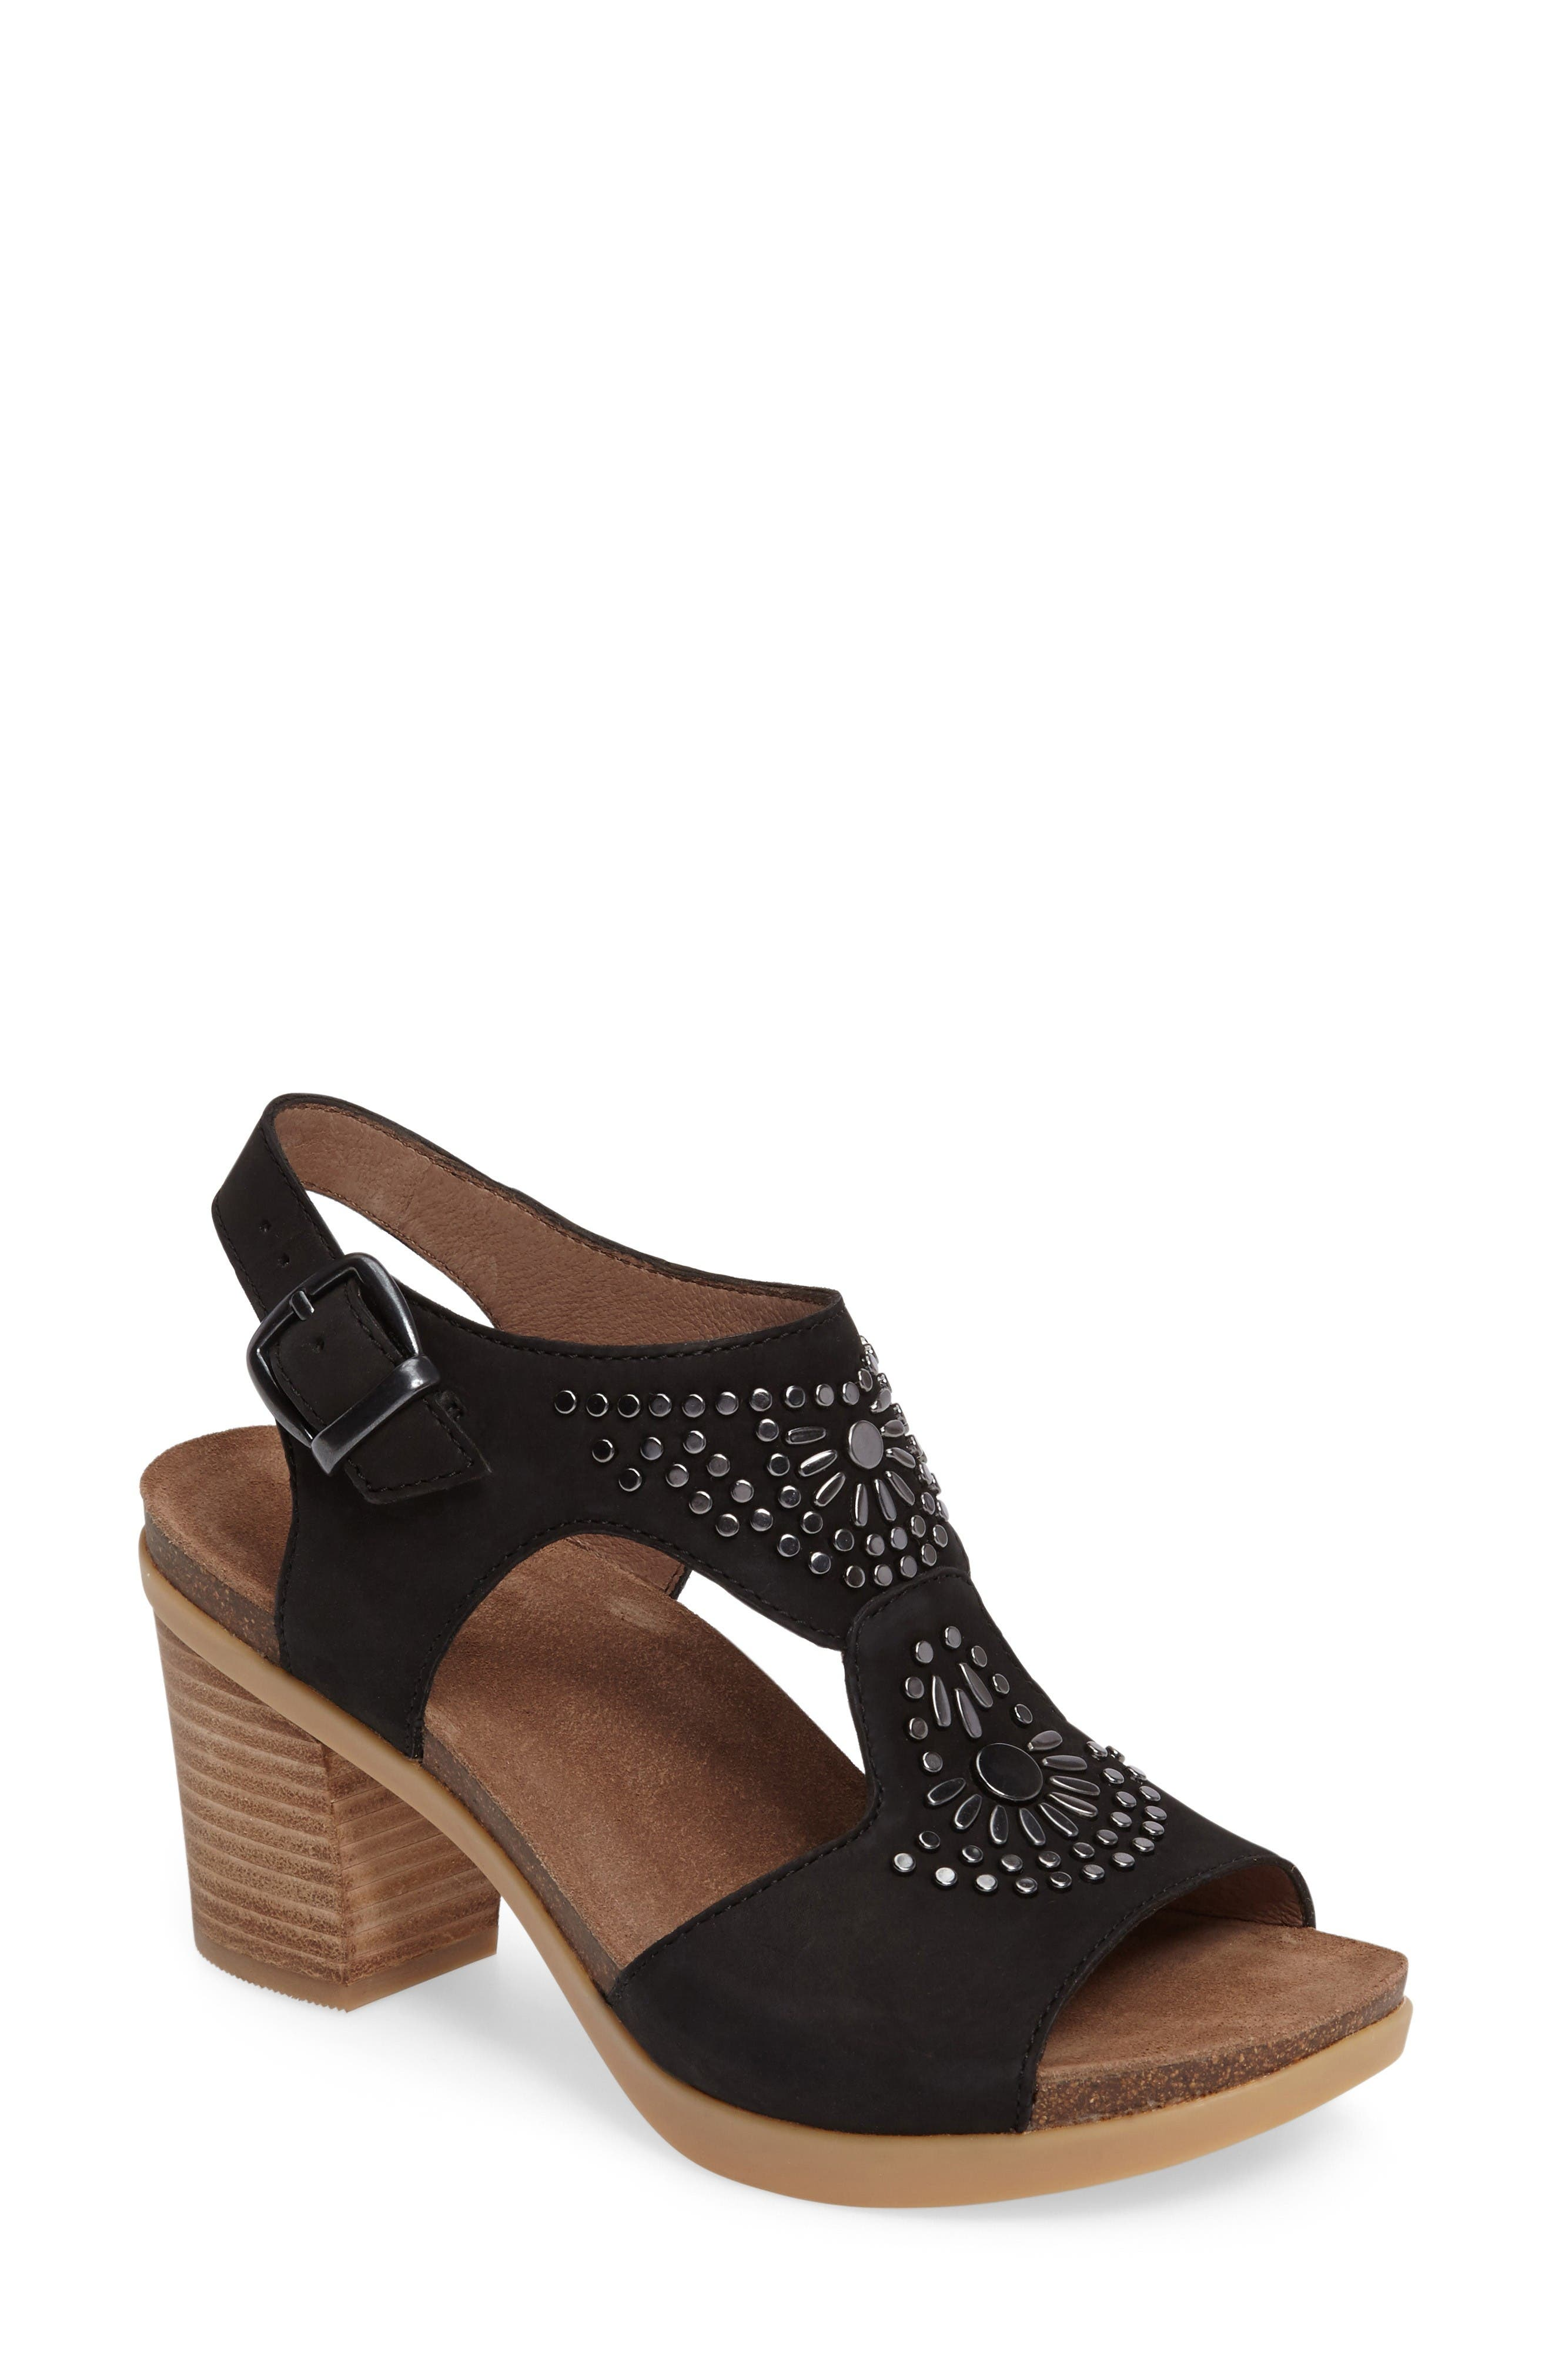 Alternate Image 1 Selected - Dansko Deandra Studded Sandal (Women)